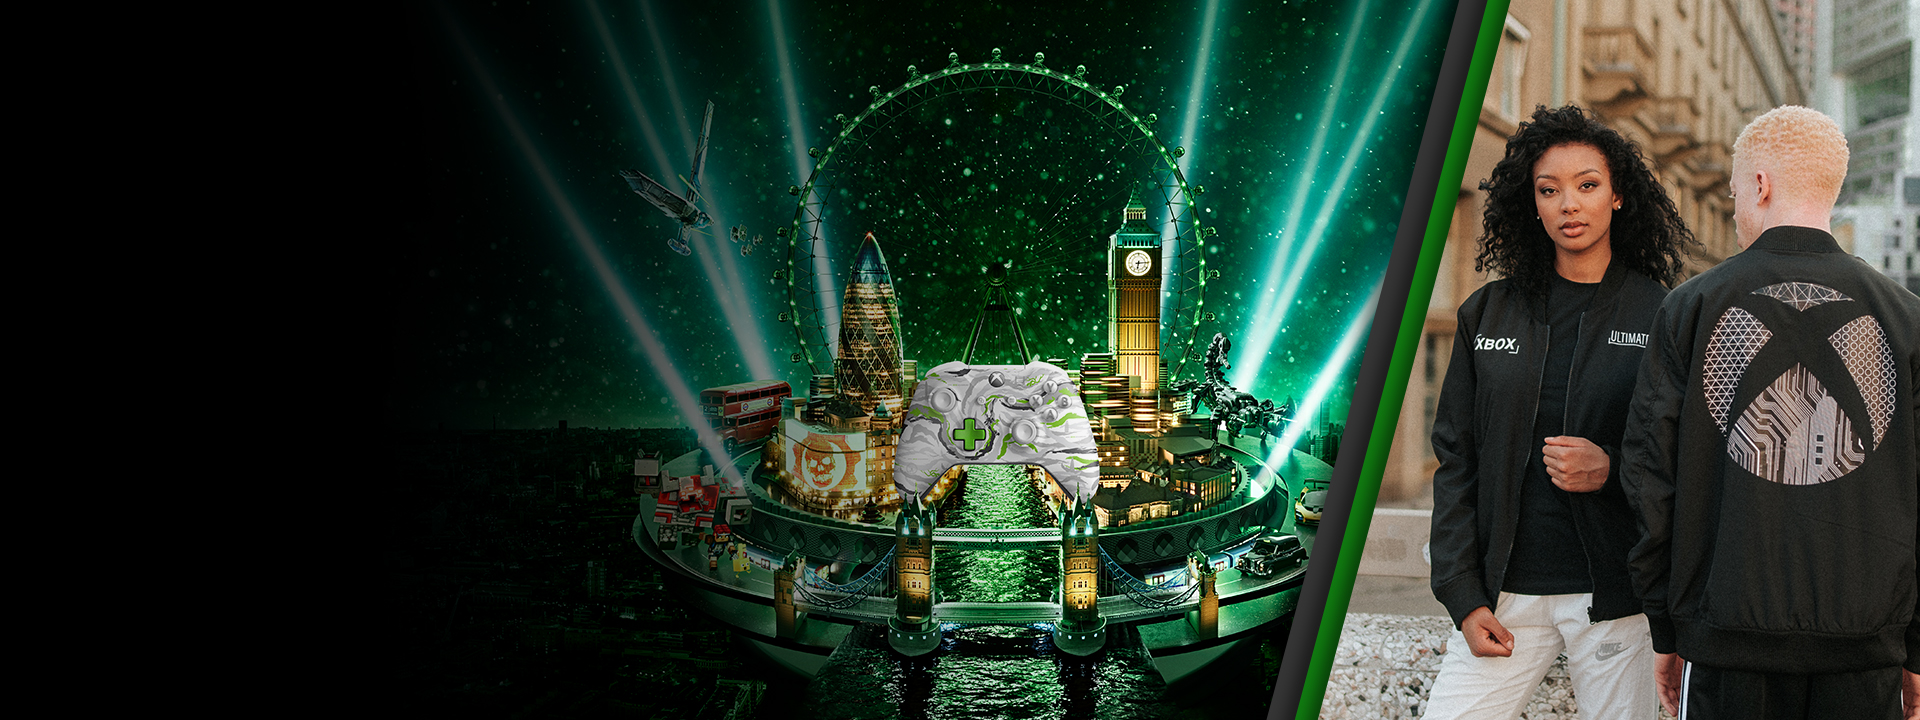 Two models wearing the Xbox Ultimate Jacket alongside a visual that depicts various elements from X019 London - including an Xbox One Controller, London Bridge, Big Ben, and more.